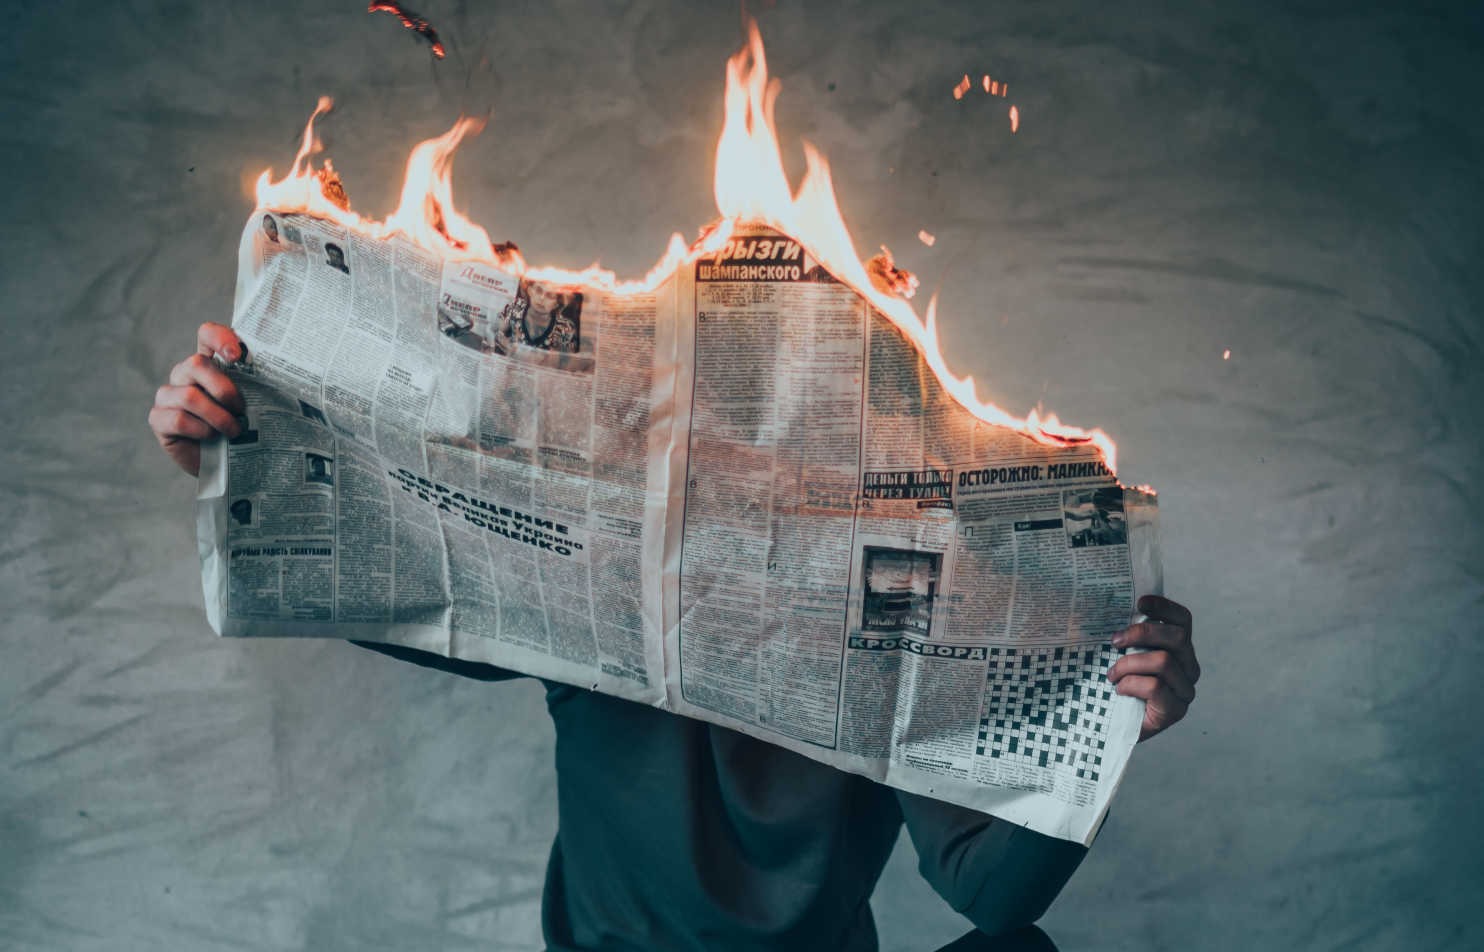 Public Relations: Does your headline sizzle? 8 tips + one great idea